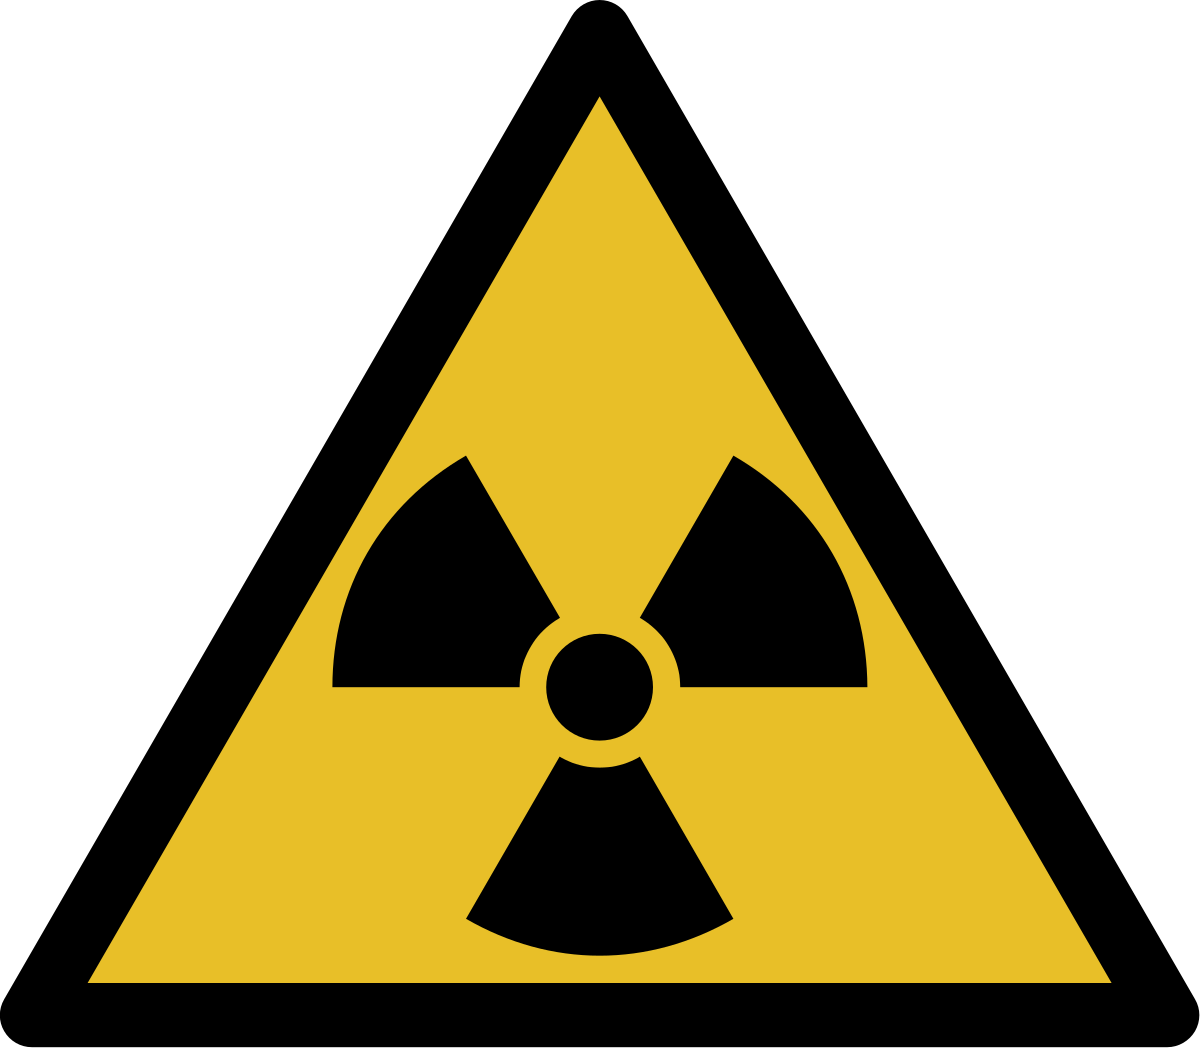 Cosmic clipart nuclear explosion Wikipedia radiation  Ionizing